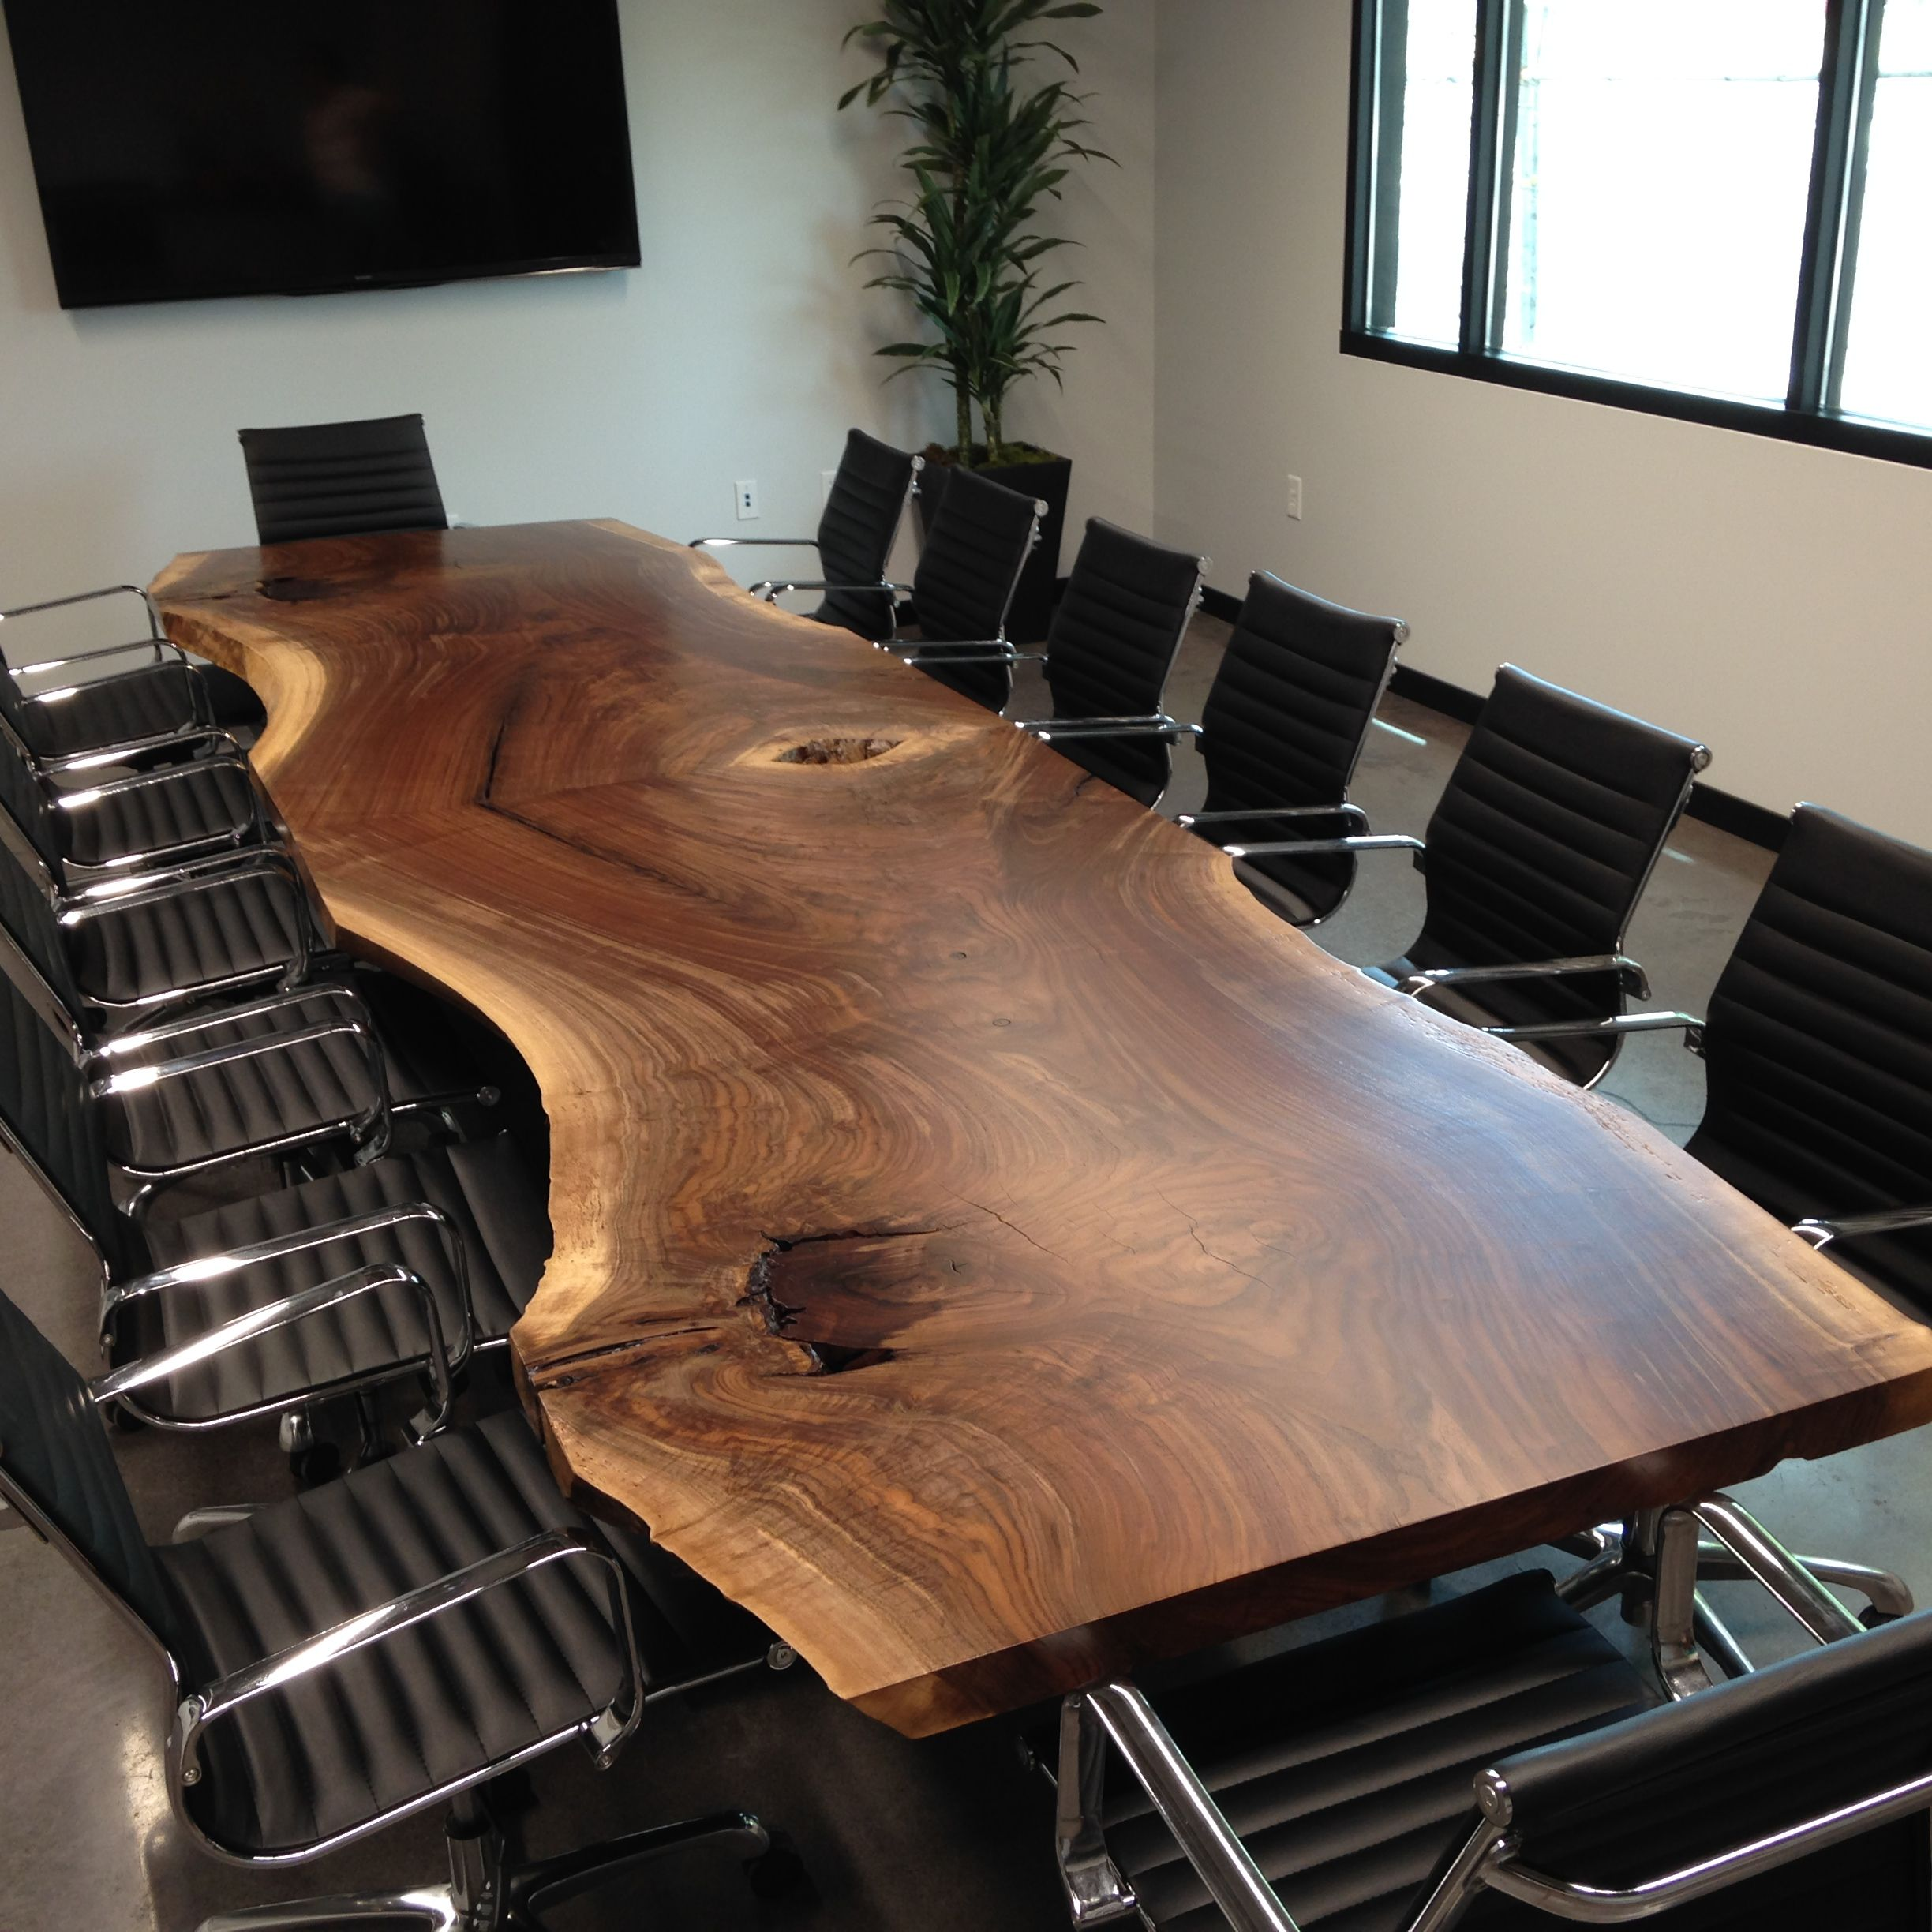 Hand Made Custom Live Edge Black Walnut Conference Table  : 274749902122 from www.custommade.com size 2448 x 2448 jpeg 516kB